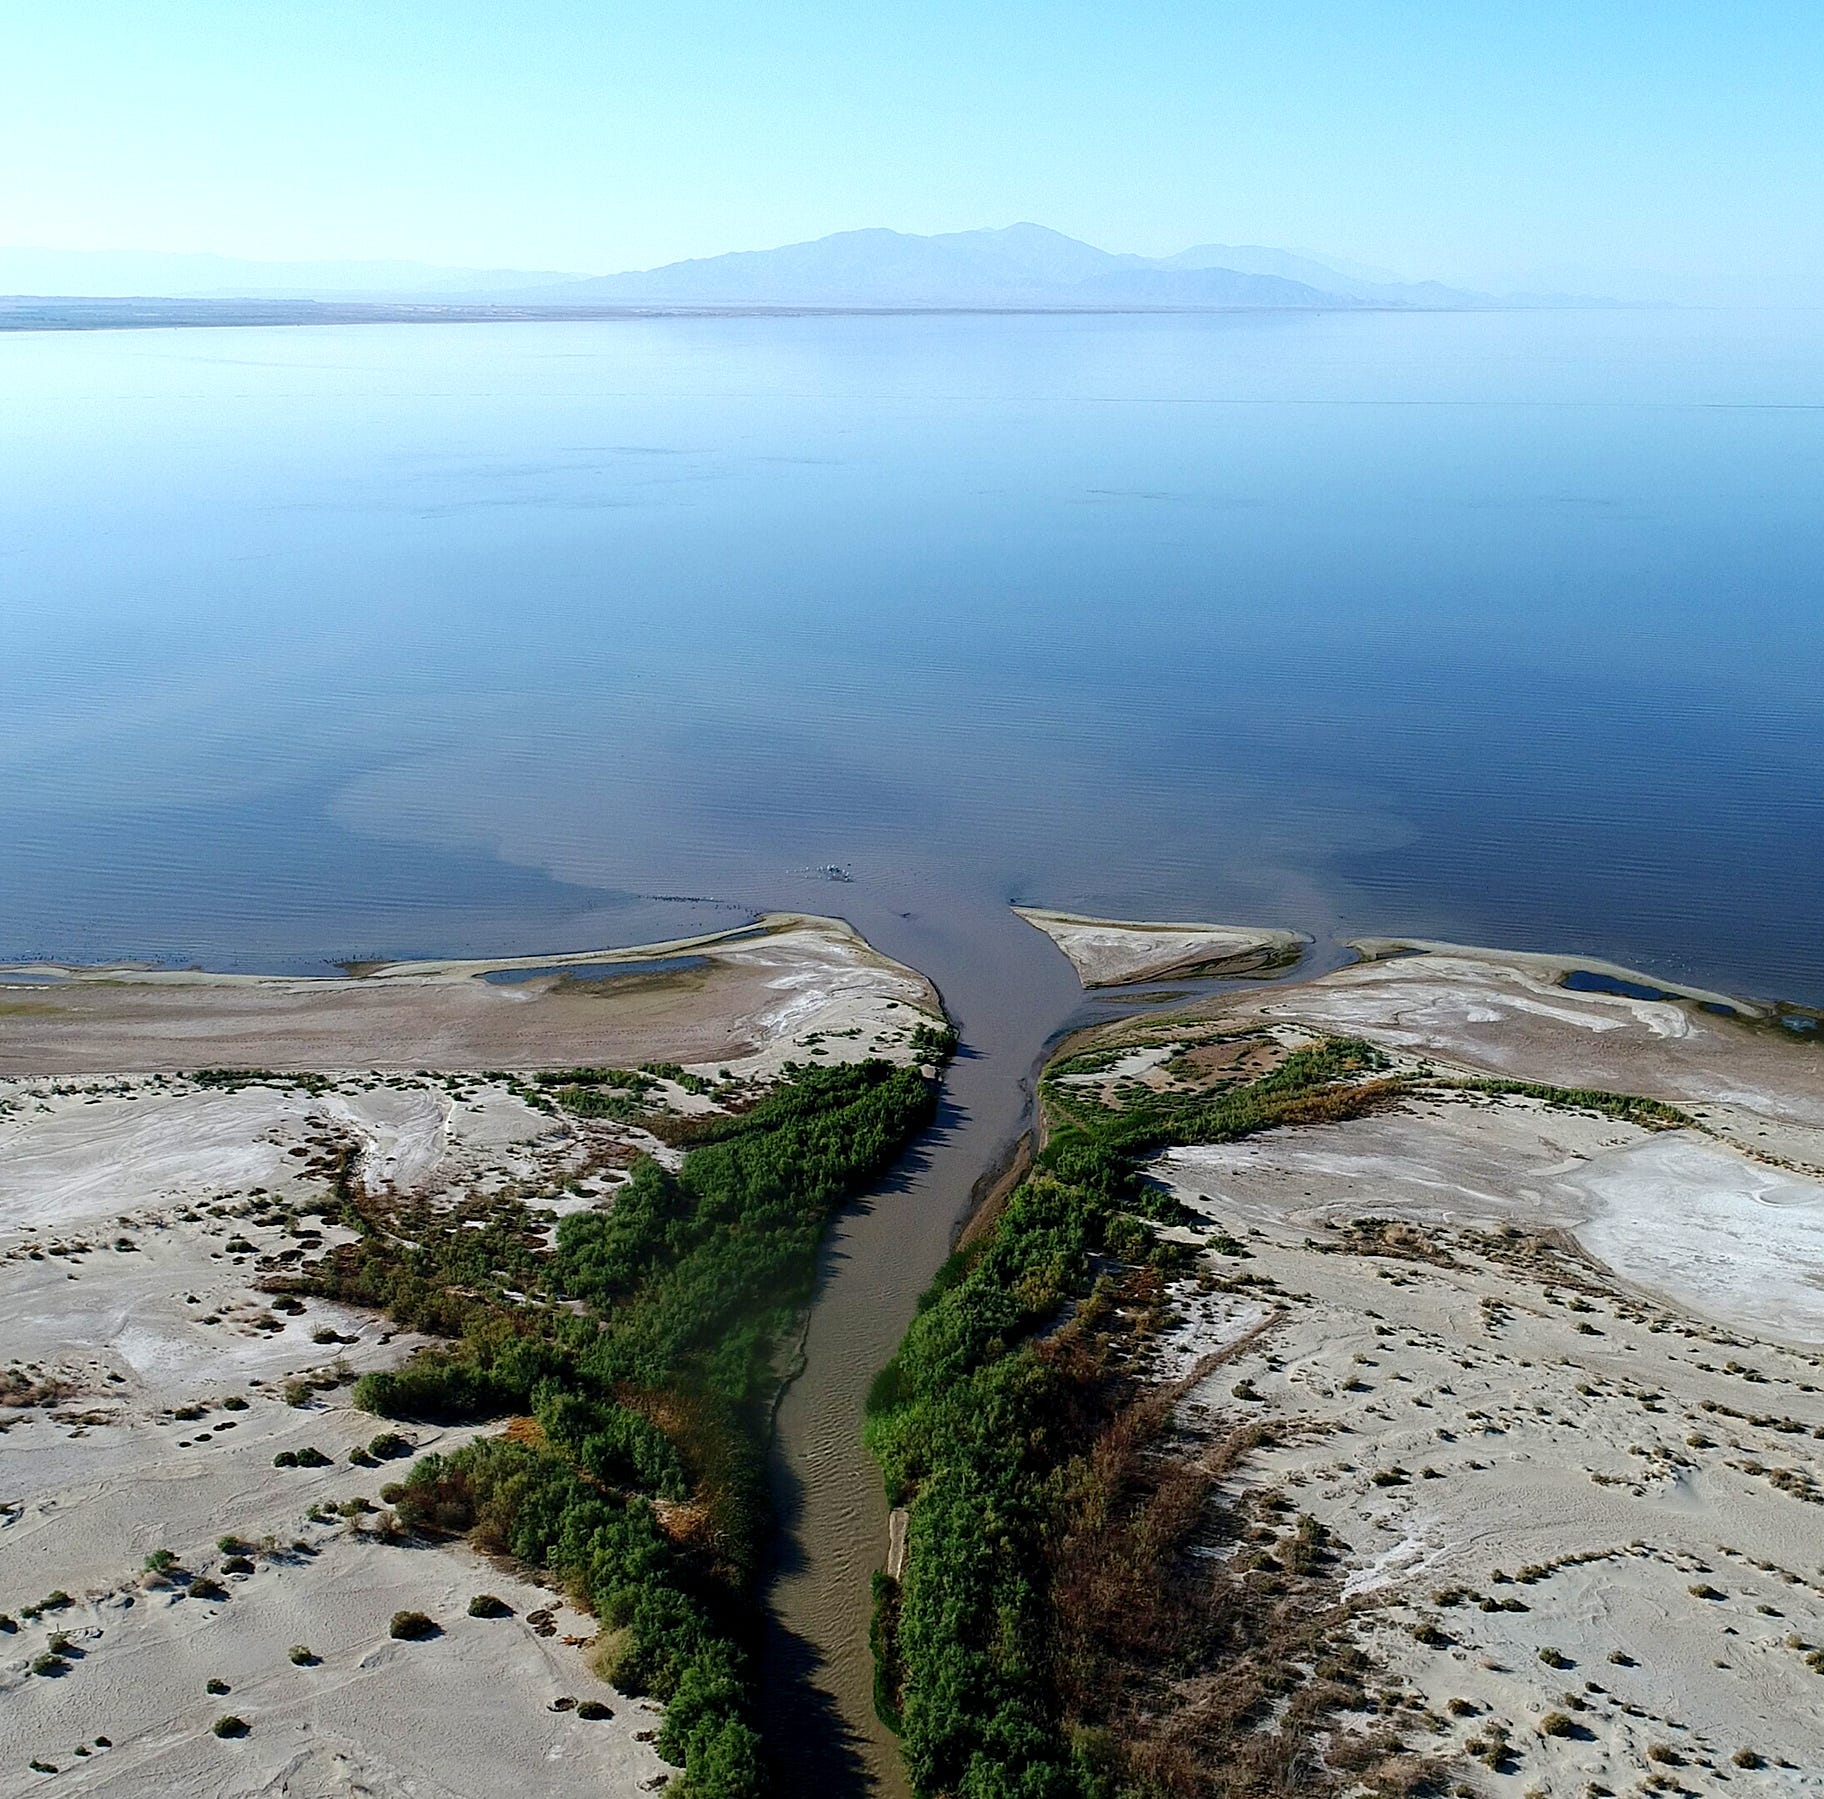 Finally, California and IID reach agreement on Salton Sea access and liability